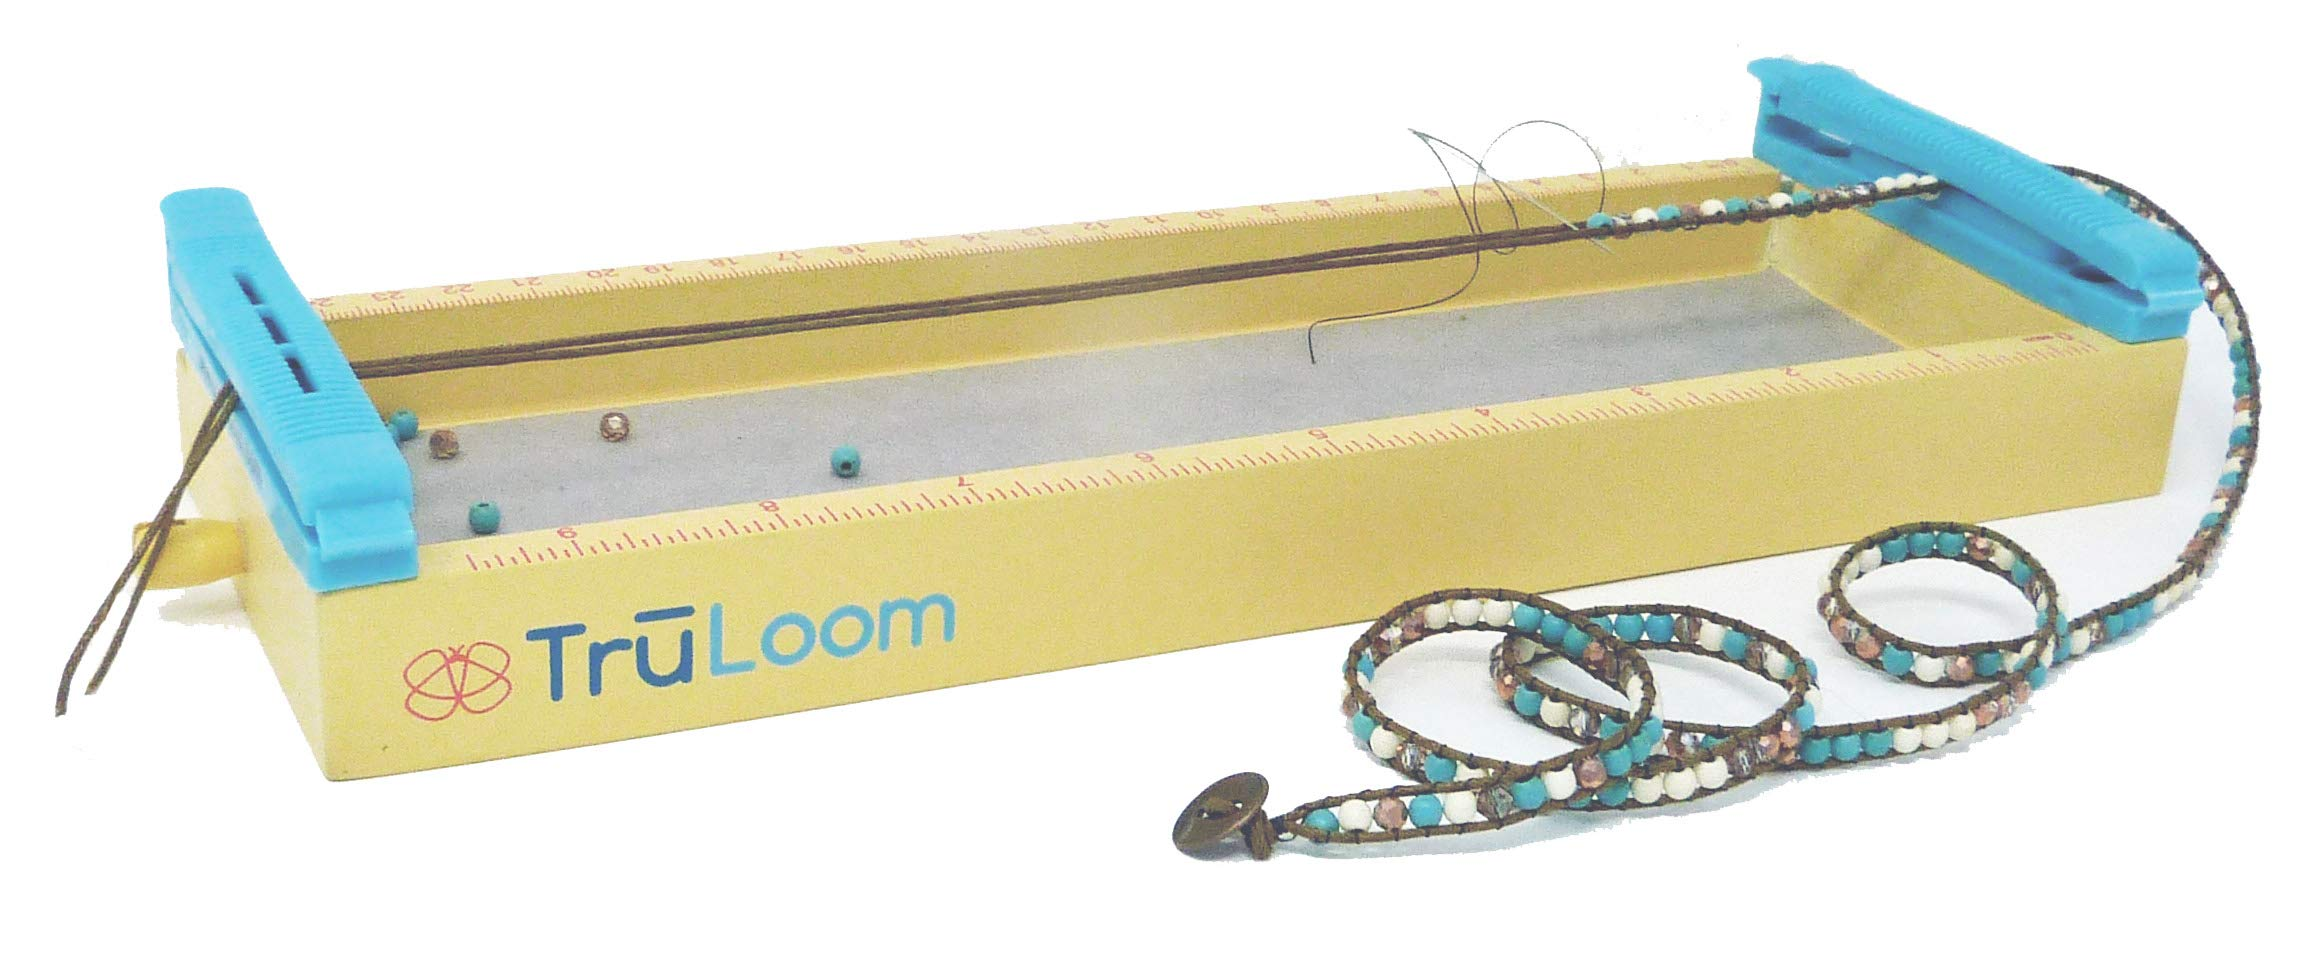 TRULOOM Easy DIY Jewelry Loom for Creating Endless Wrap Bracelets, Chokers, Bead Weaving and More. Quality Designer Glass and Stone Bead Kit Included. Ceate Your own Boutique Style Jewelry! by BonaFide Kit Company